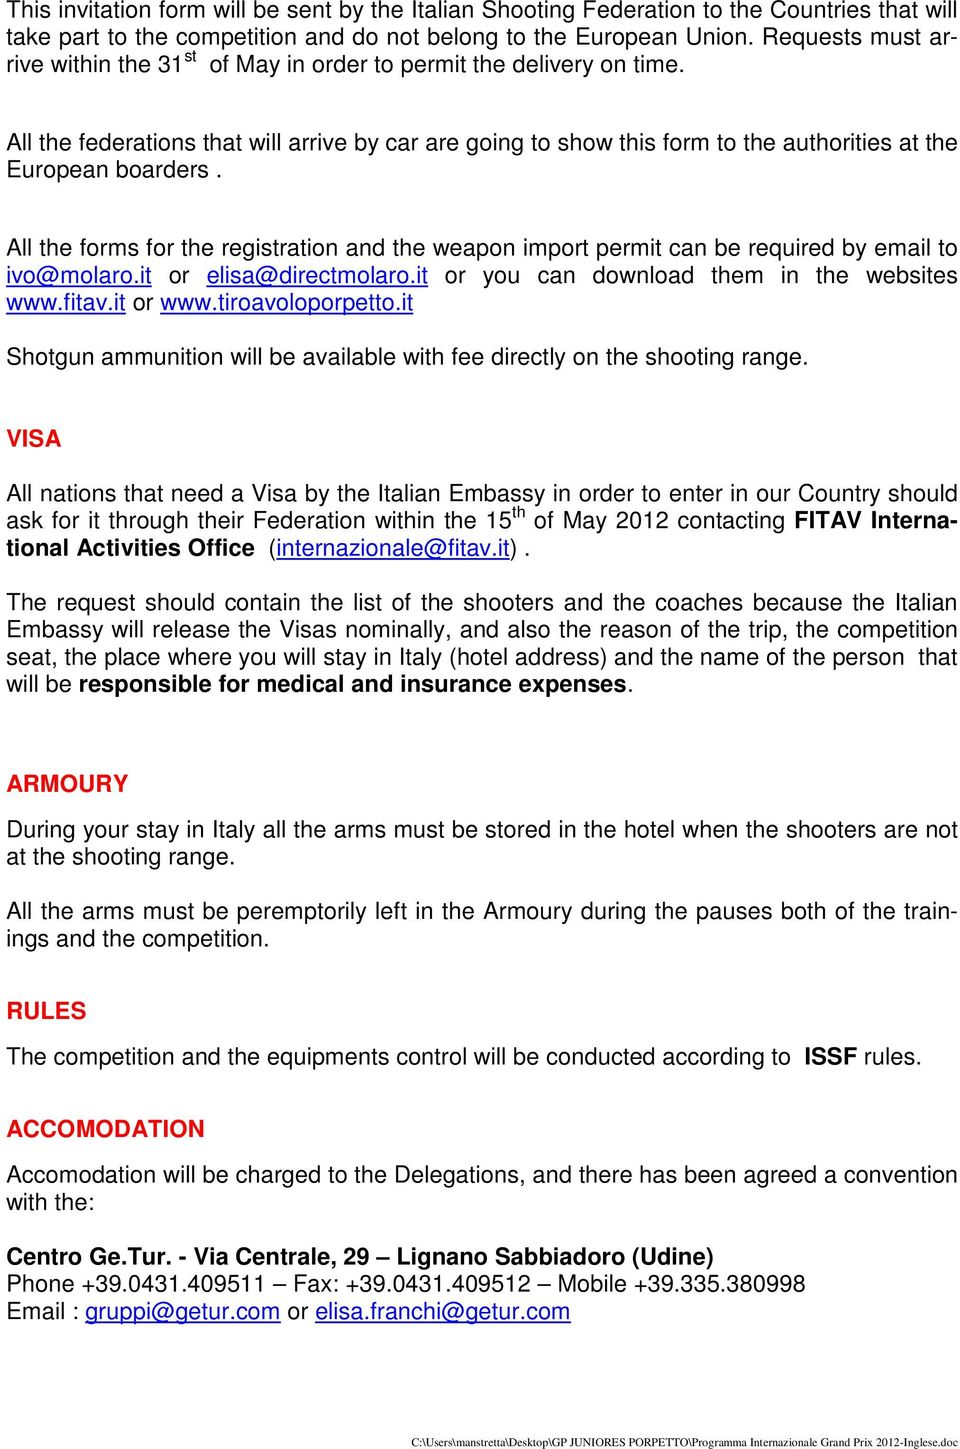 All the federations that will arrive by car are going to show this form to the authorities at the European boarders.